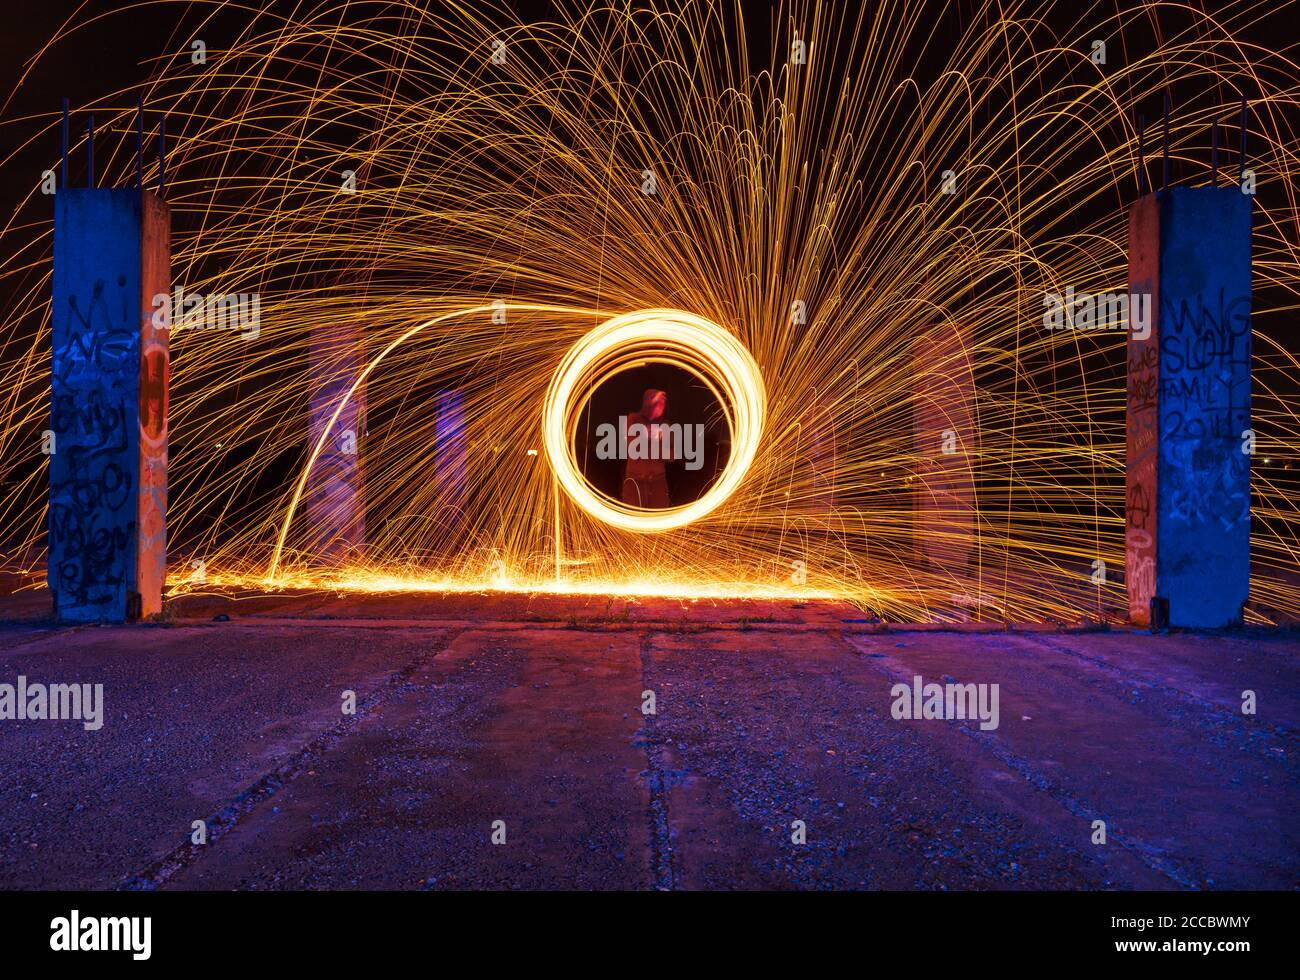 Steel wool fire photography shot on long exposure, making abstract shapes. Stock Photo